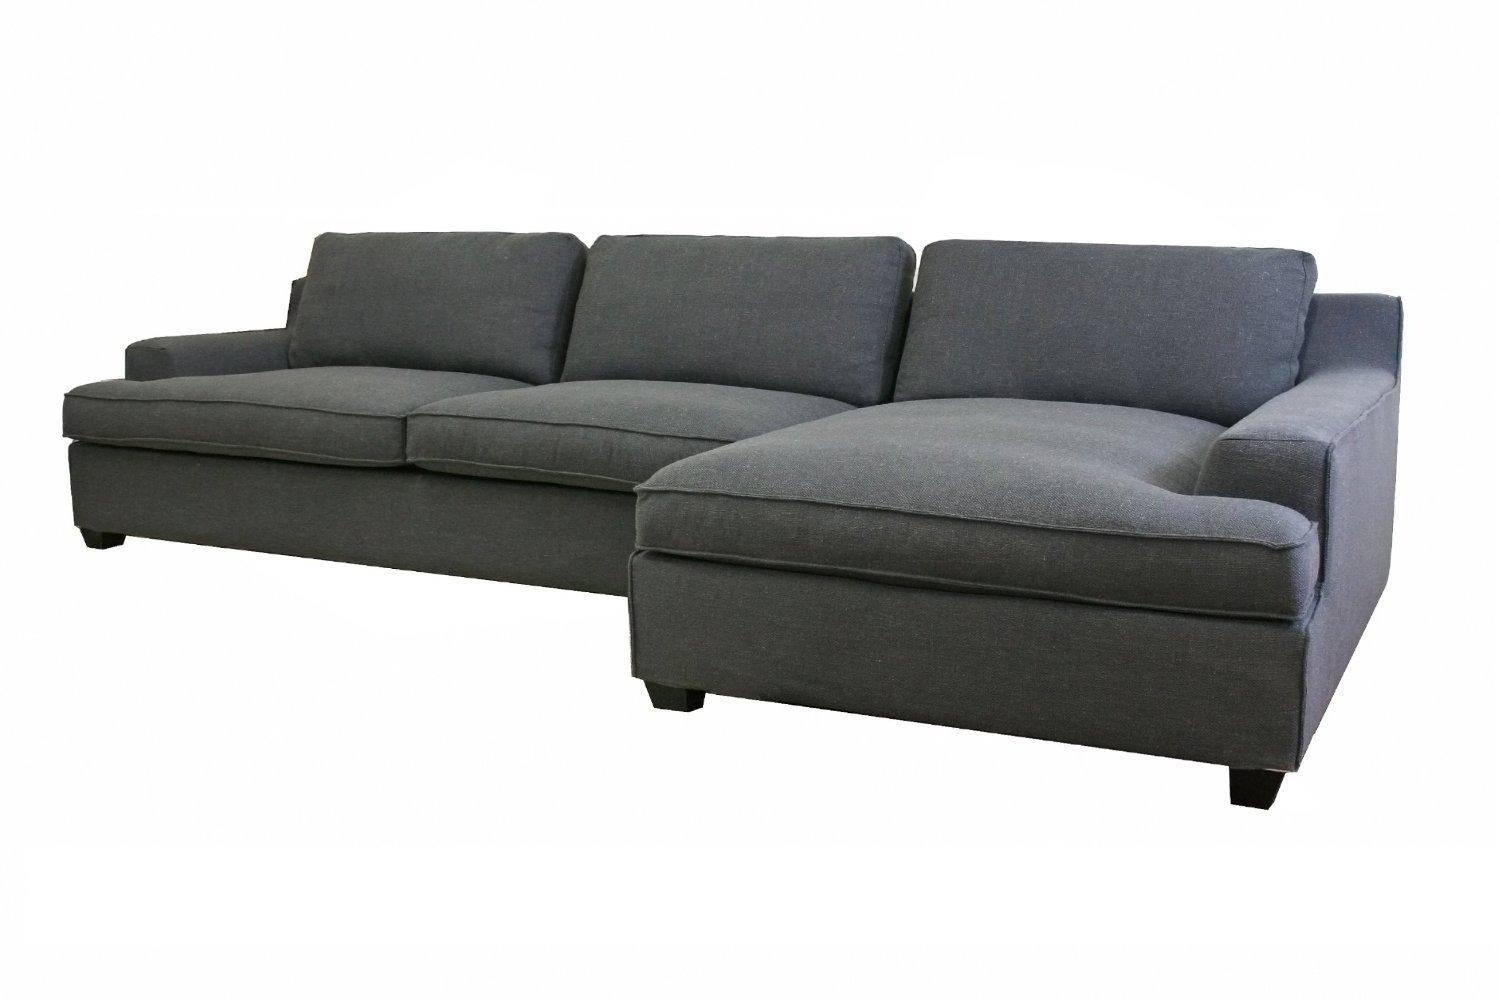 Sofa With Chaise Lounge 20 Top Sofas With Chaise Longue Sofa Ideas